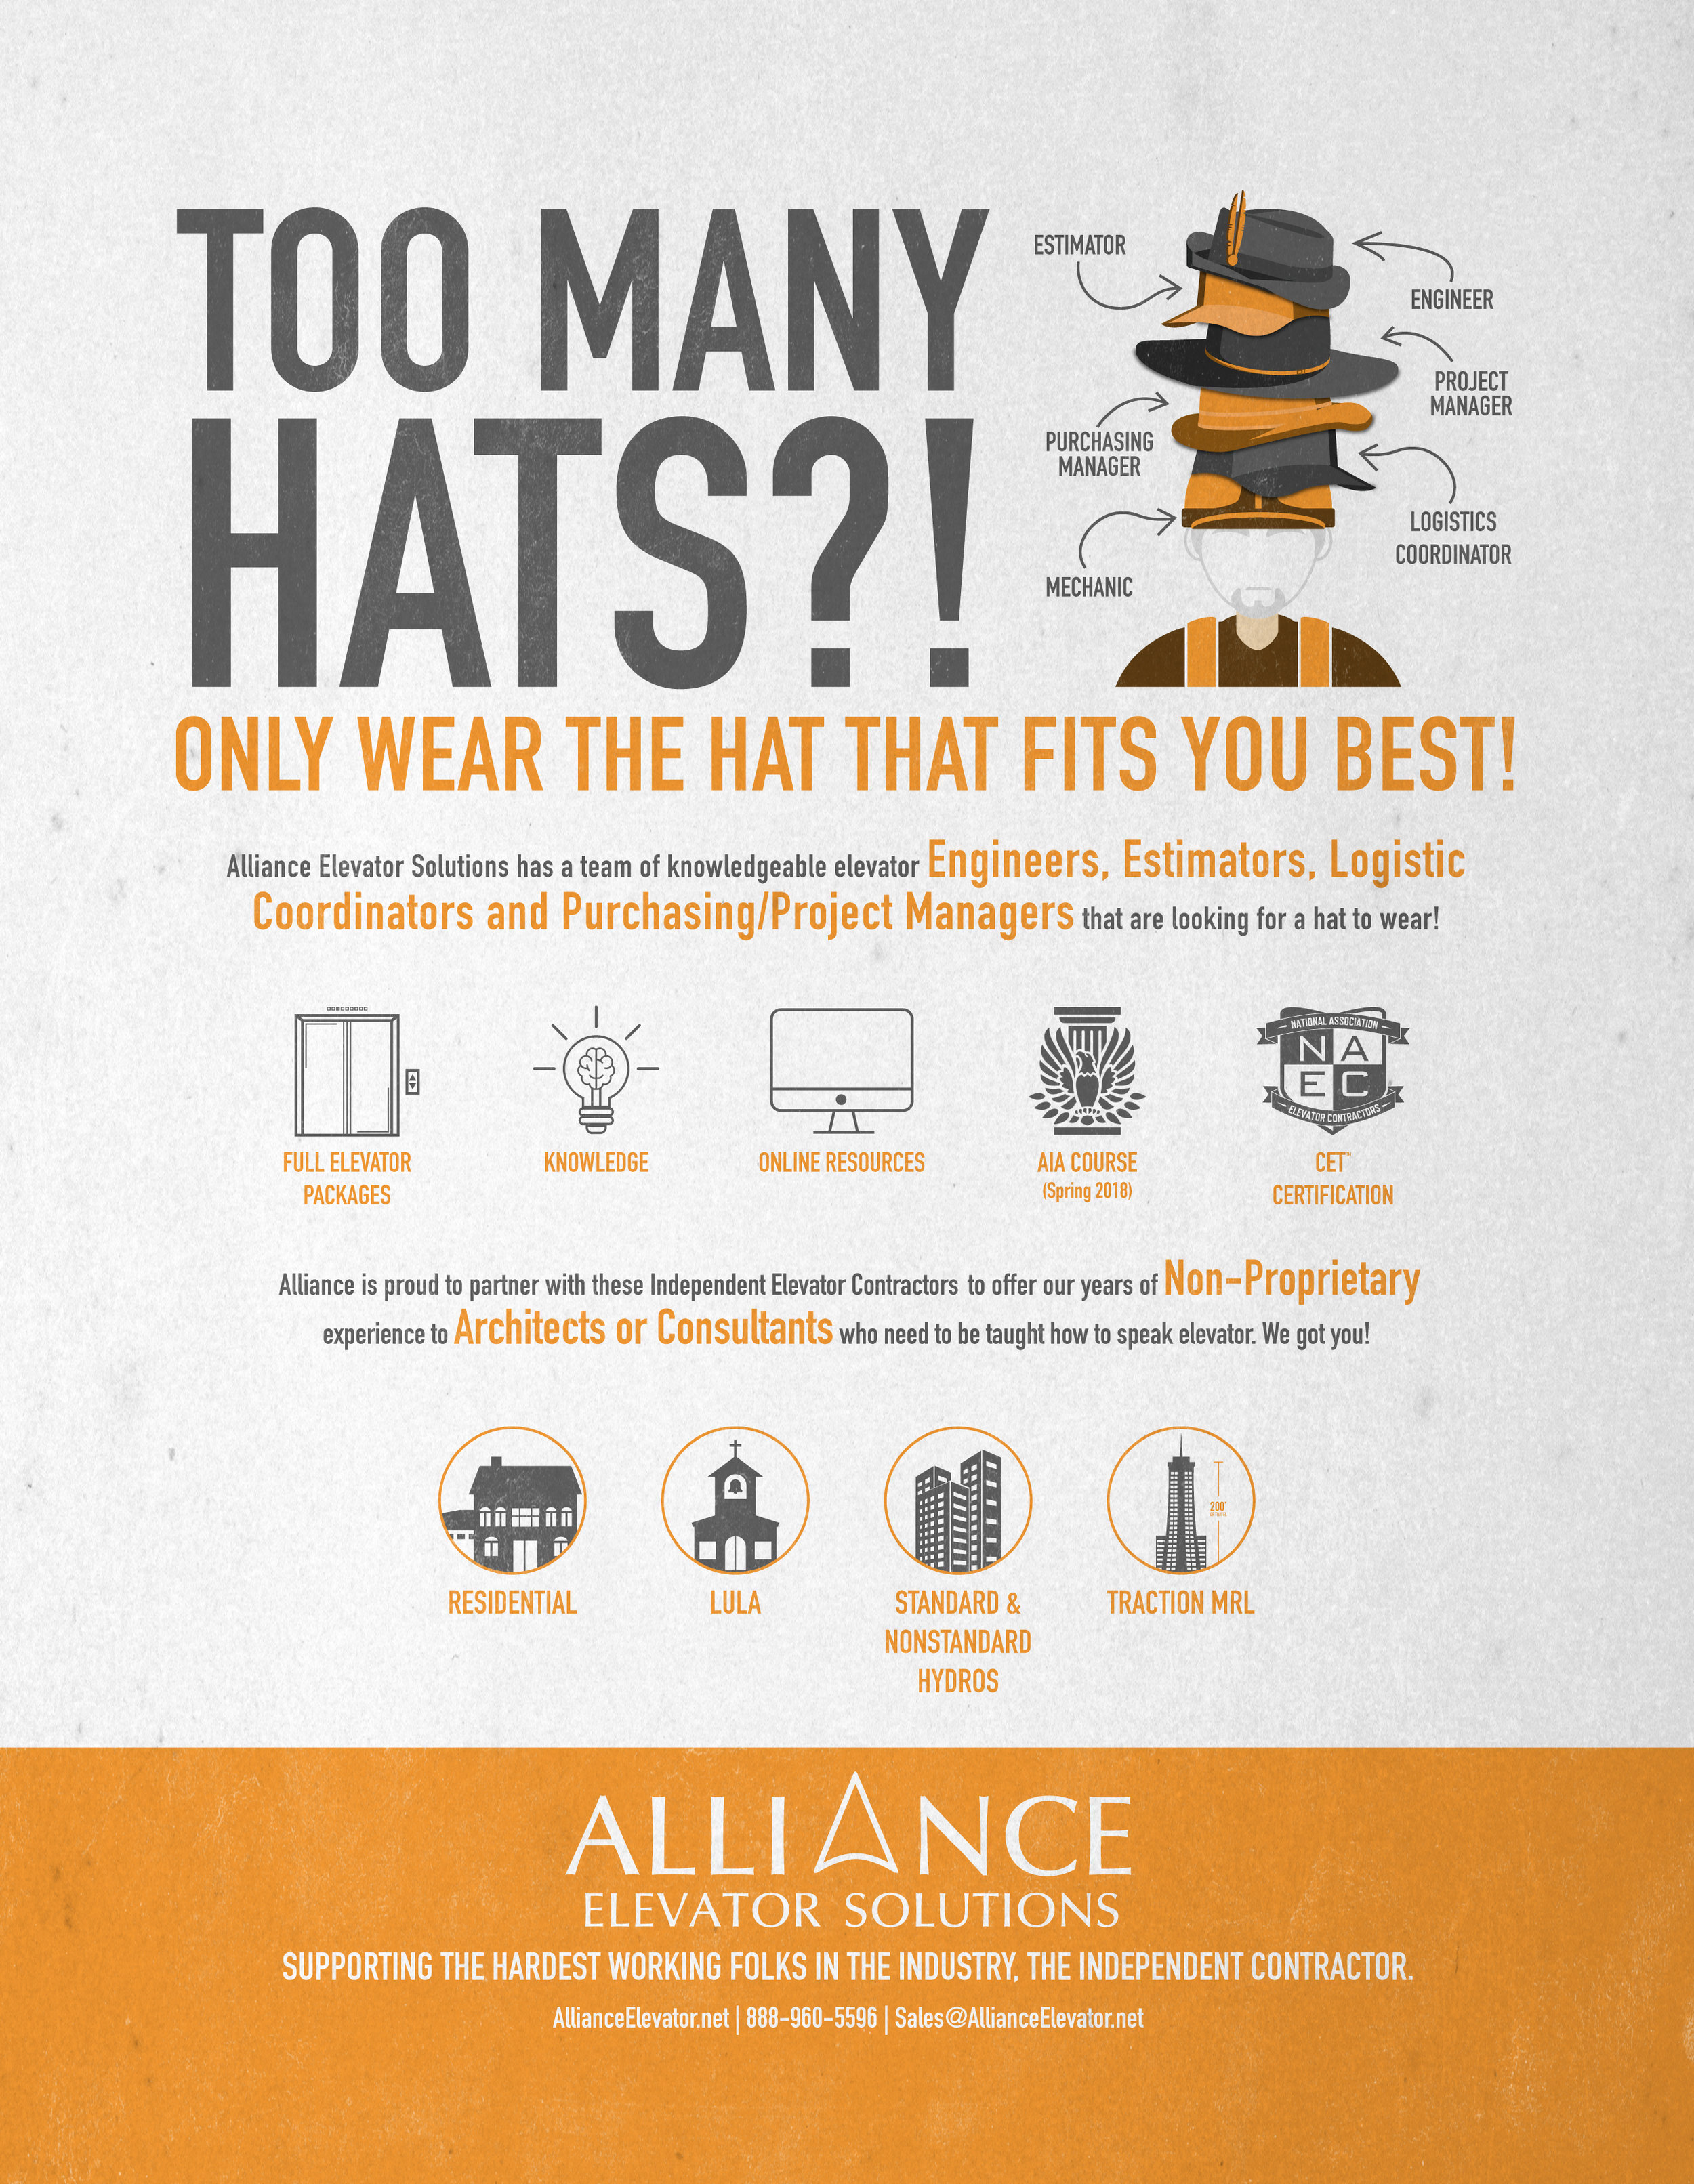 © ProArts Media - Alliance Elevator Solutions - 5 Hats.jpg